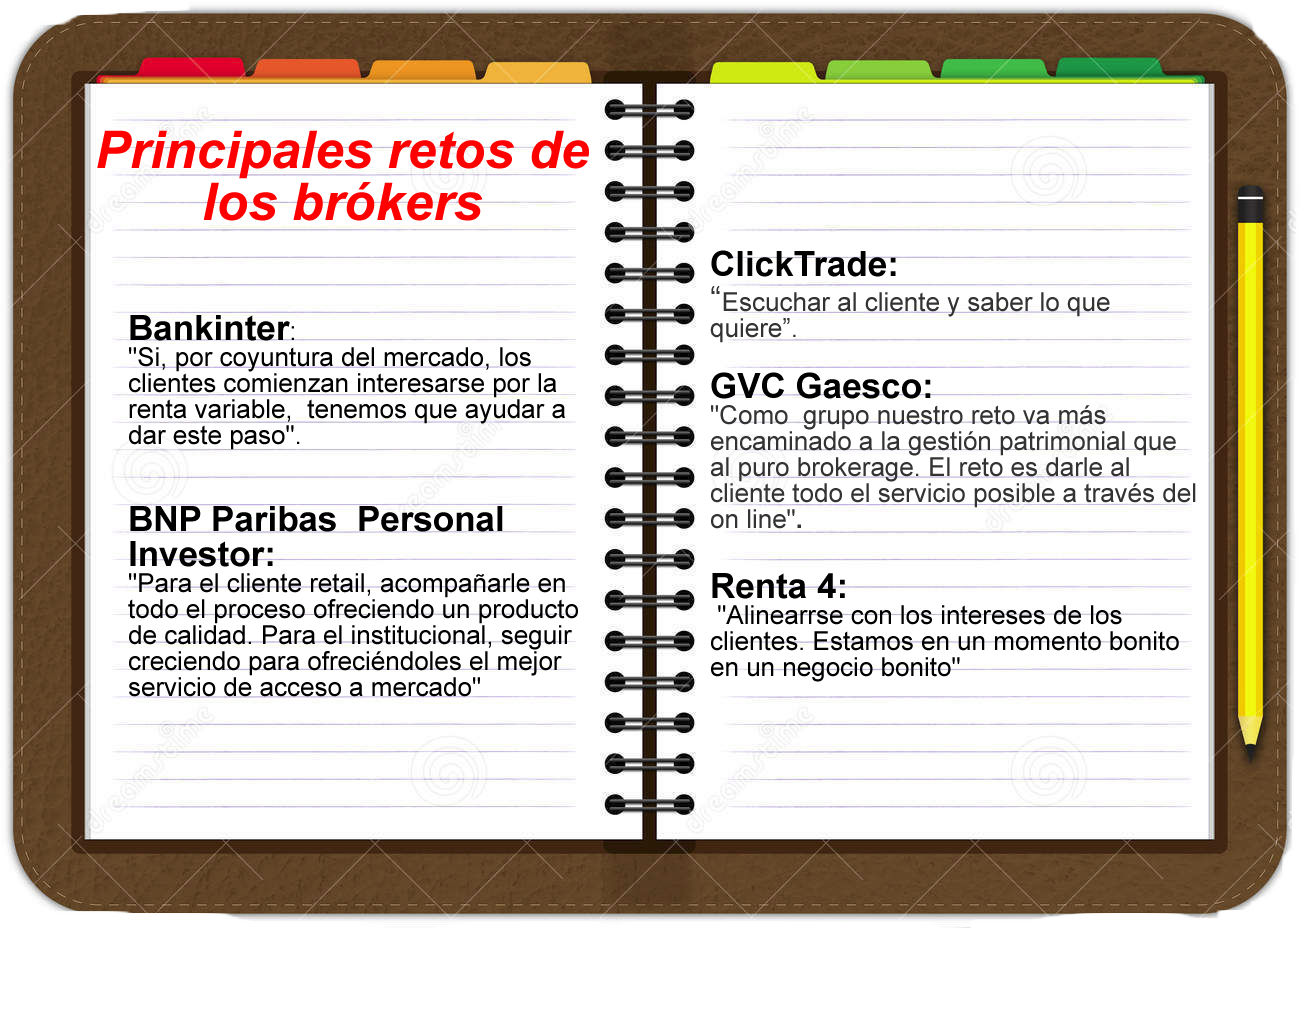 Retos brokers